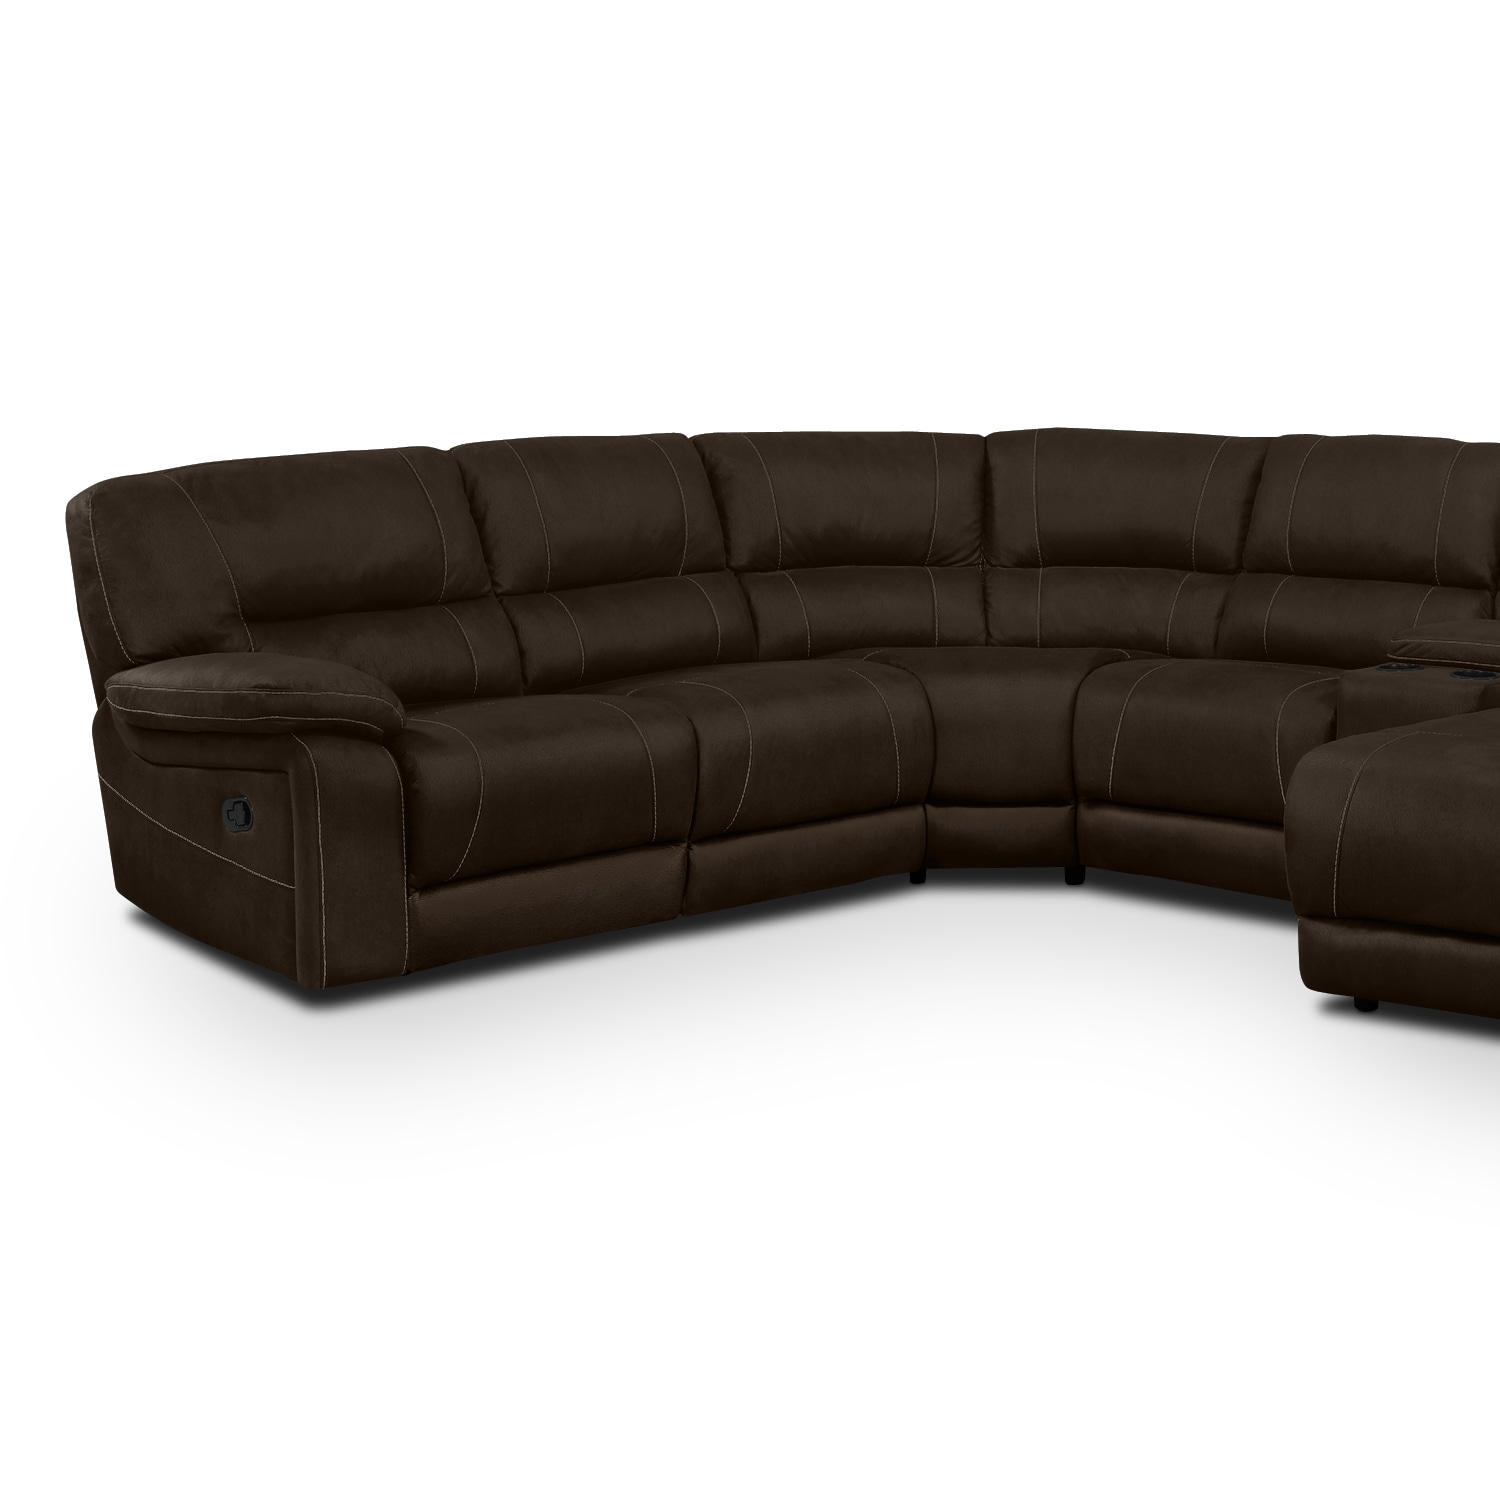 Wyoming 5 Piece Reclining Sectional with Right Facing Chaise